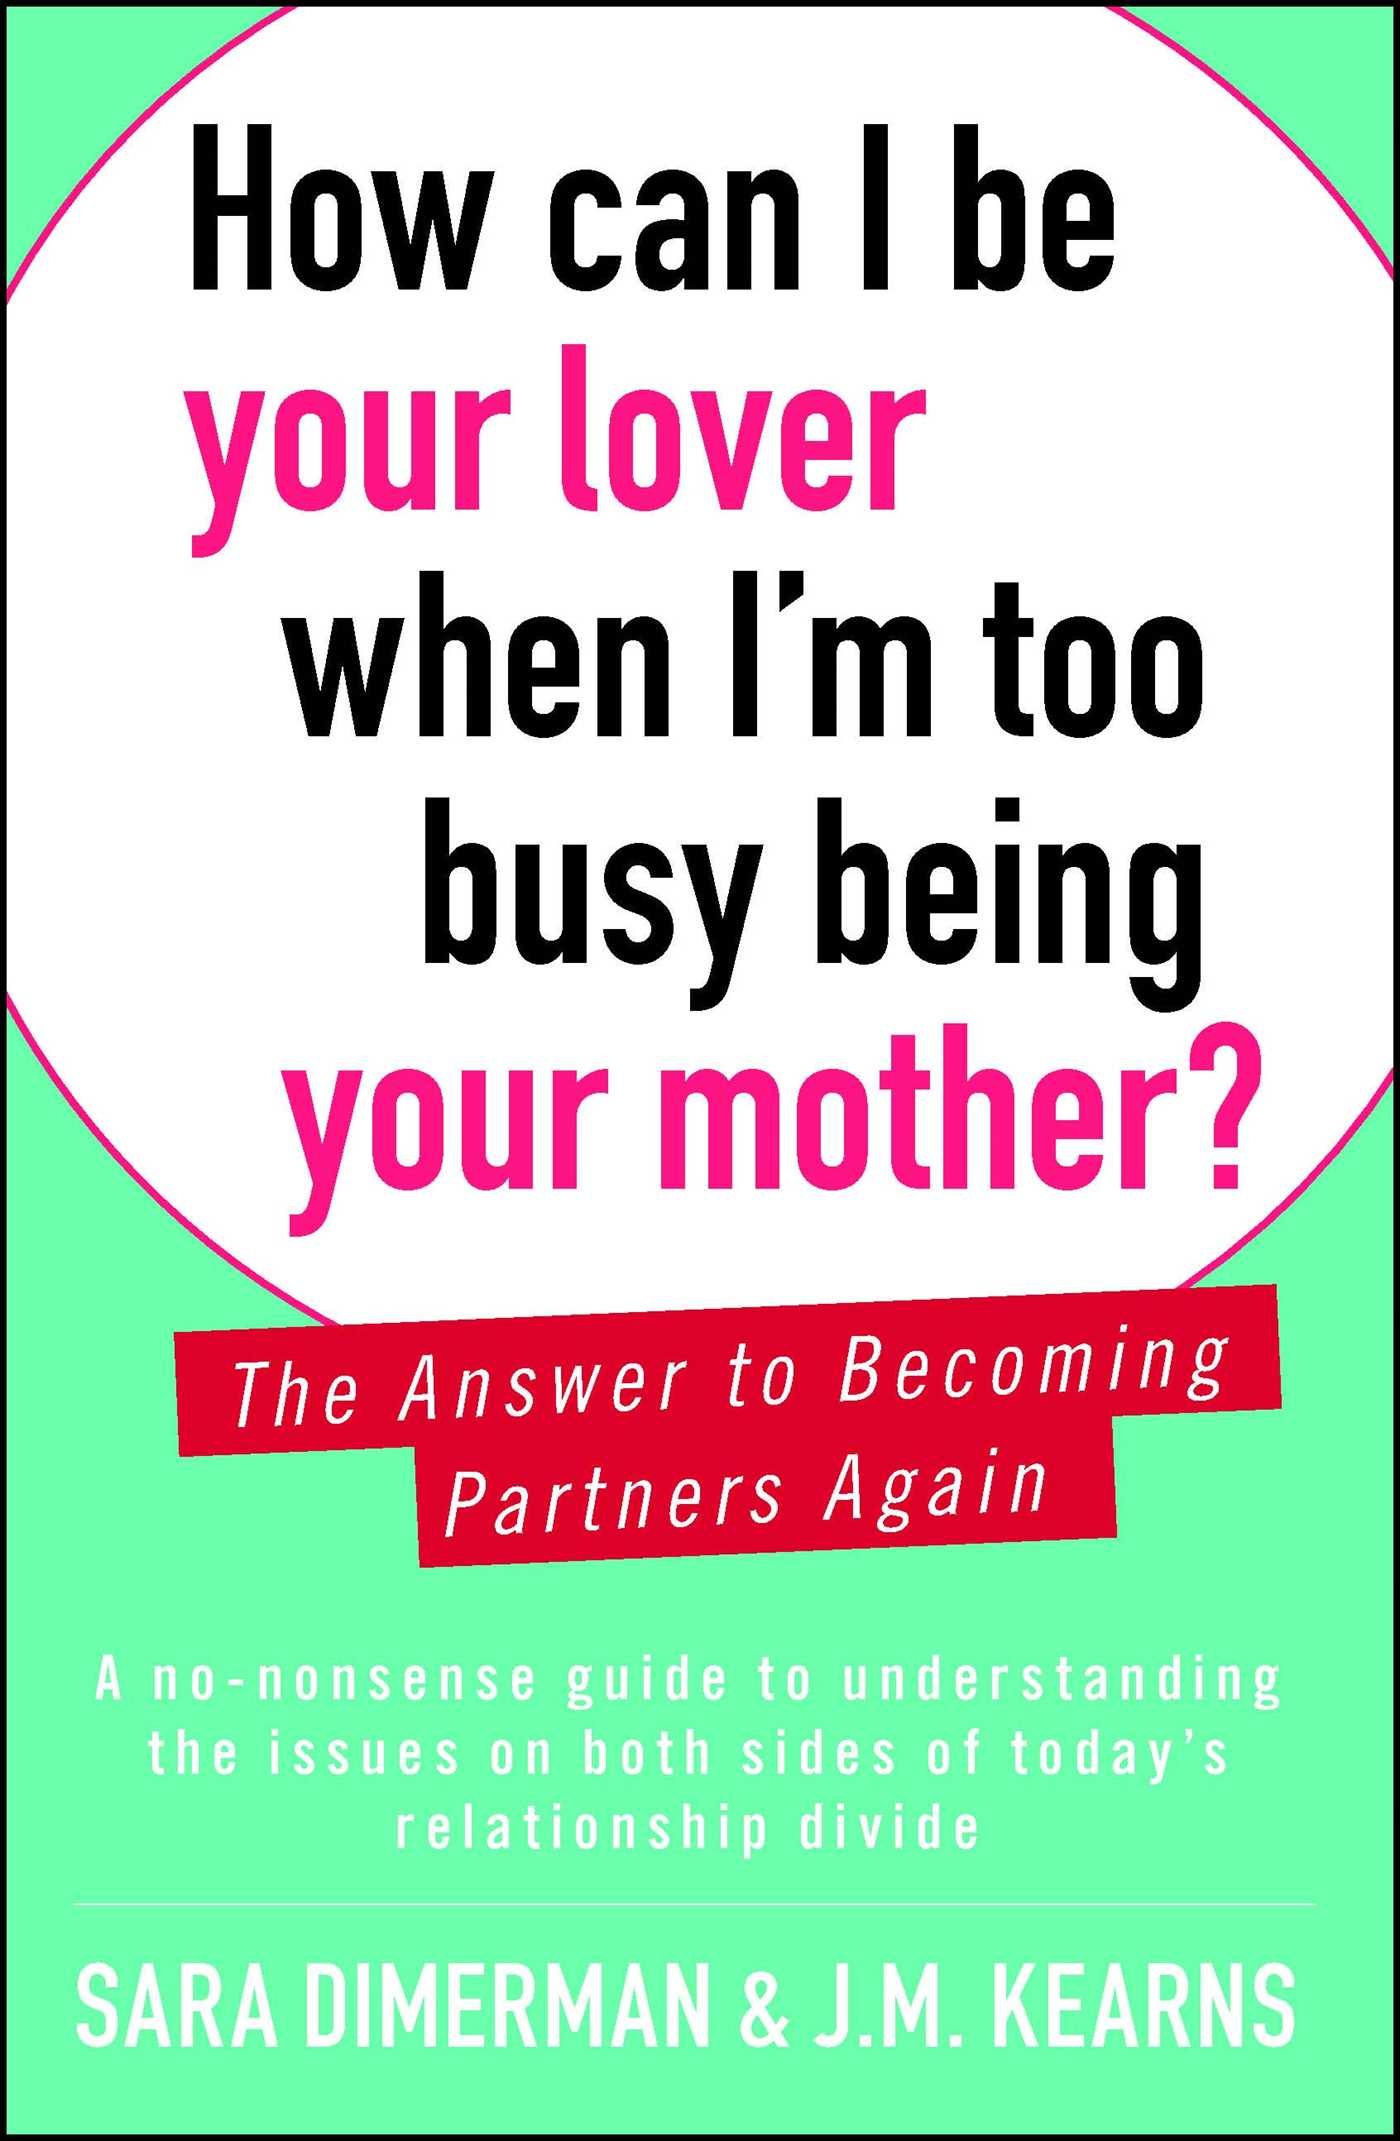 How Can I Be Your Lover When I'm Too Busy Being Your Mother? : The Answer to Becoming Partners Again | Psychology & Self-Improvement